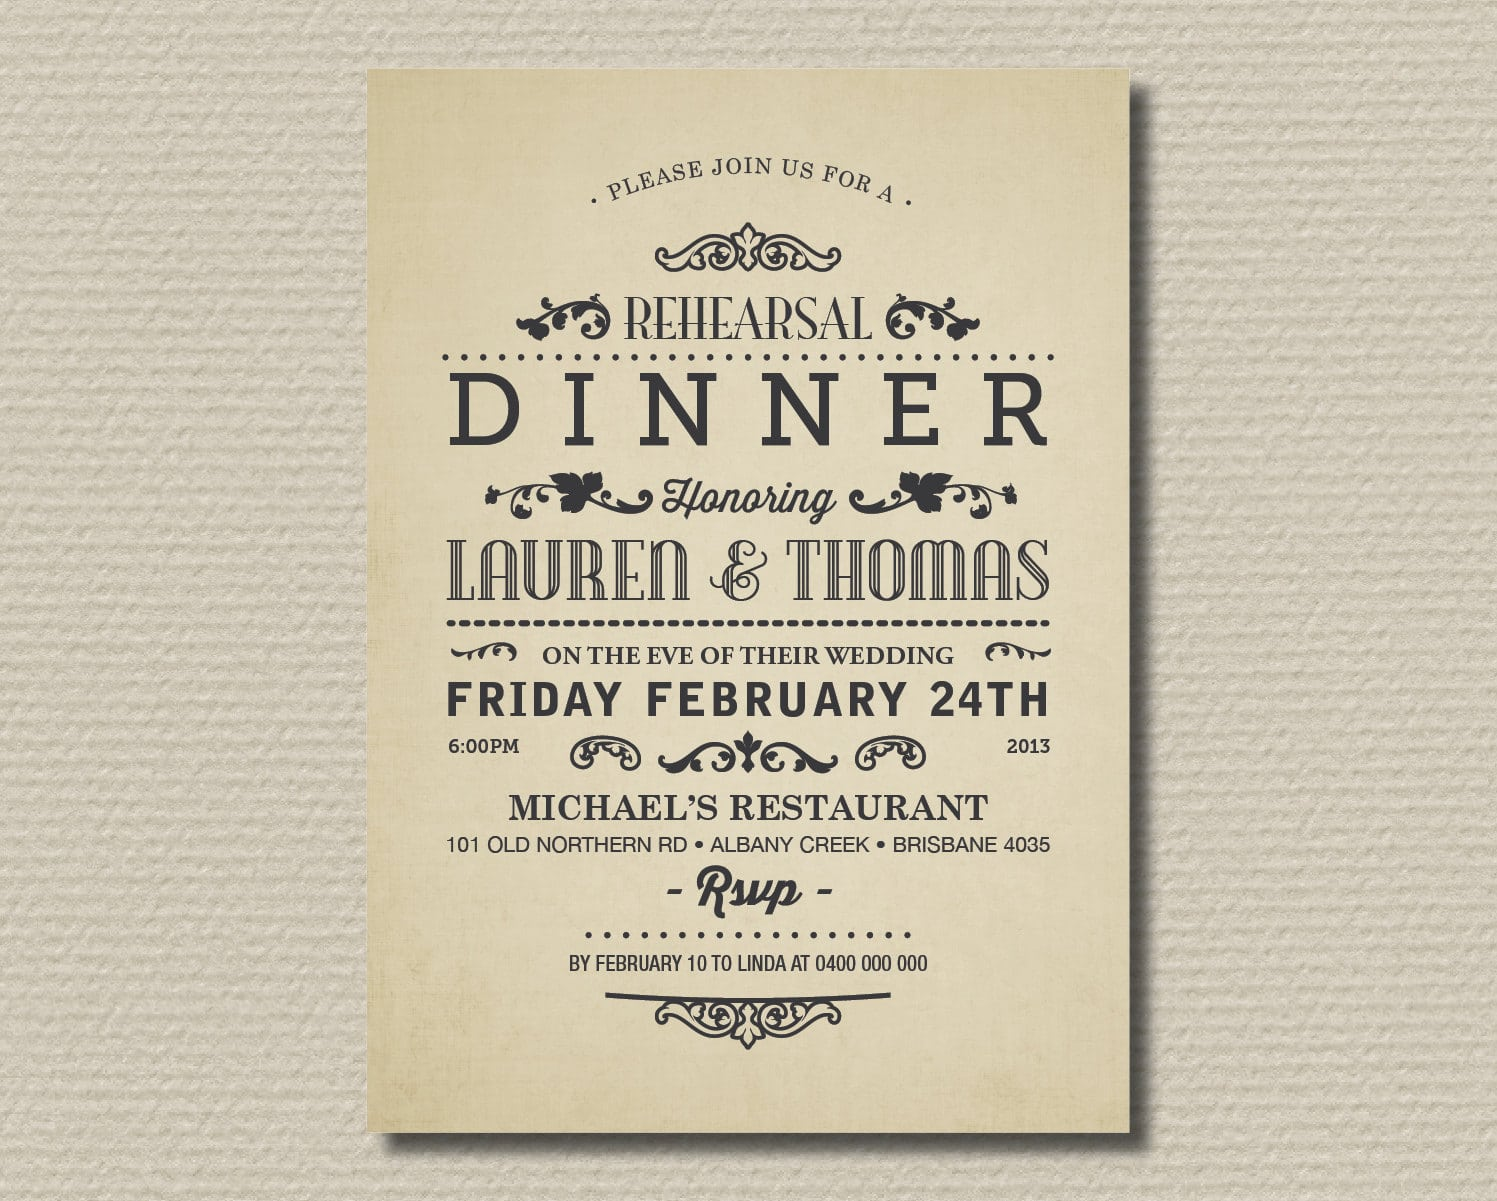 Impactful Invitation To A Dinner Party At Rustic Article Happy